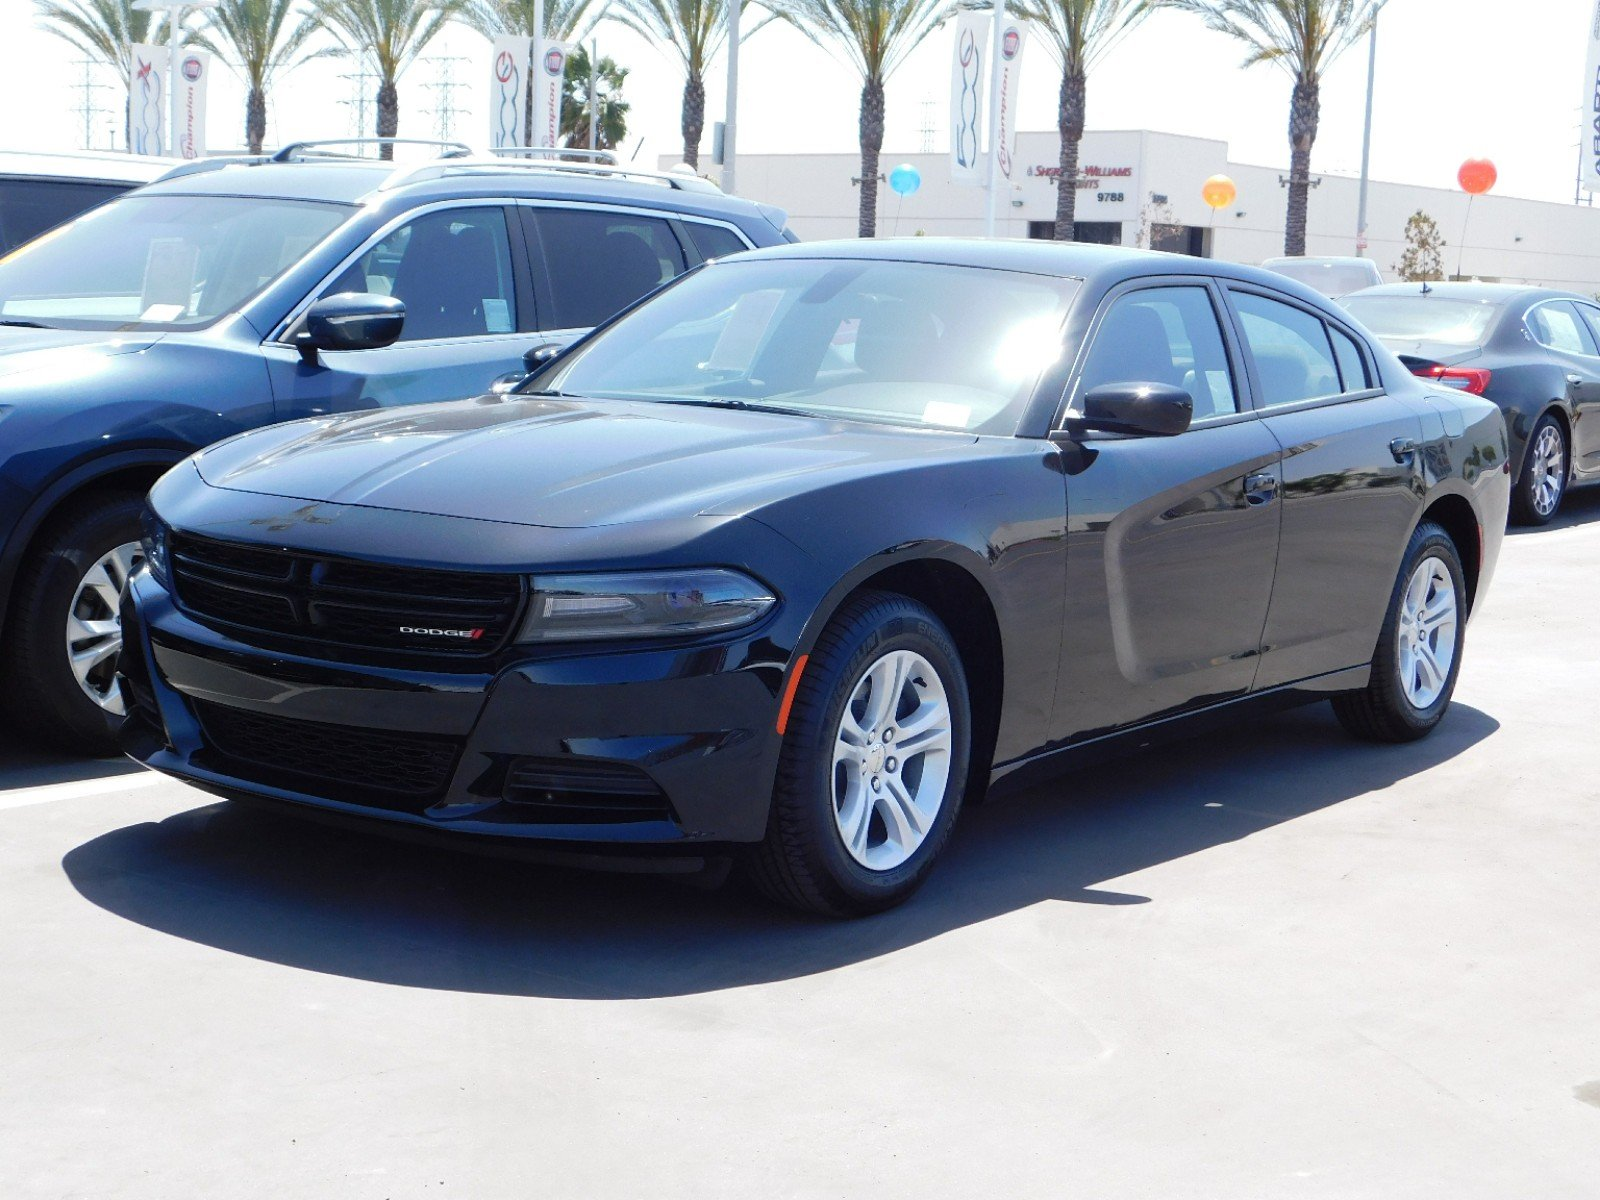 houston sxt auto dodge show charger